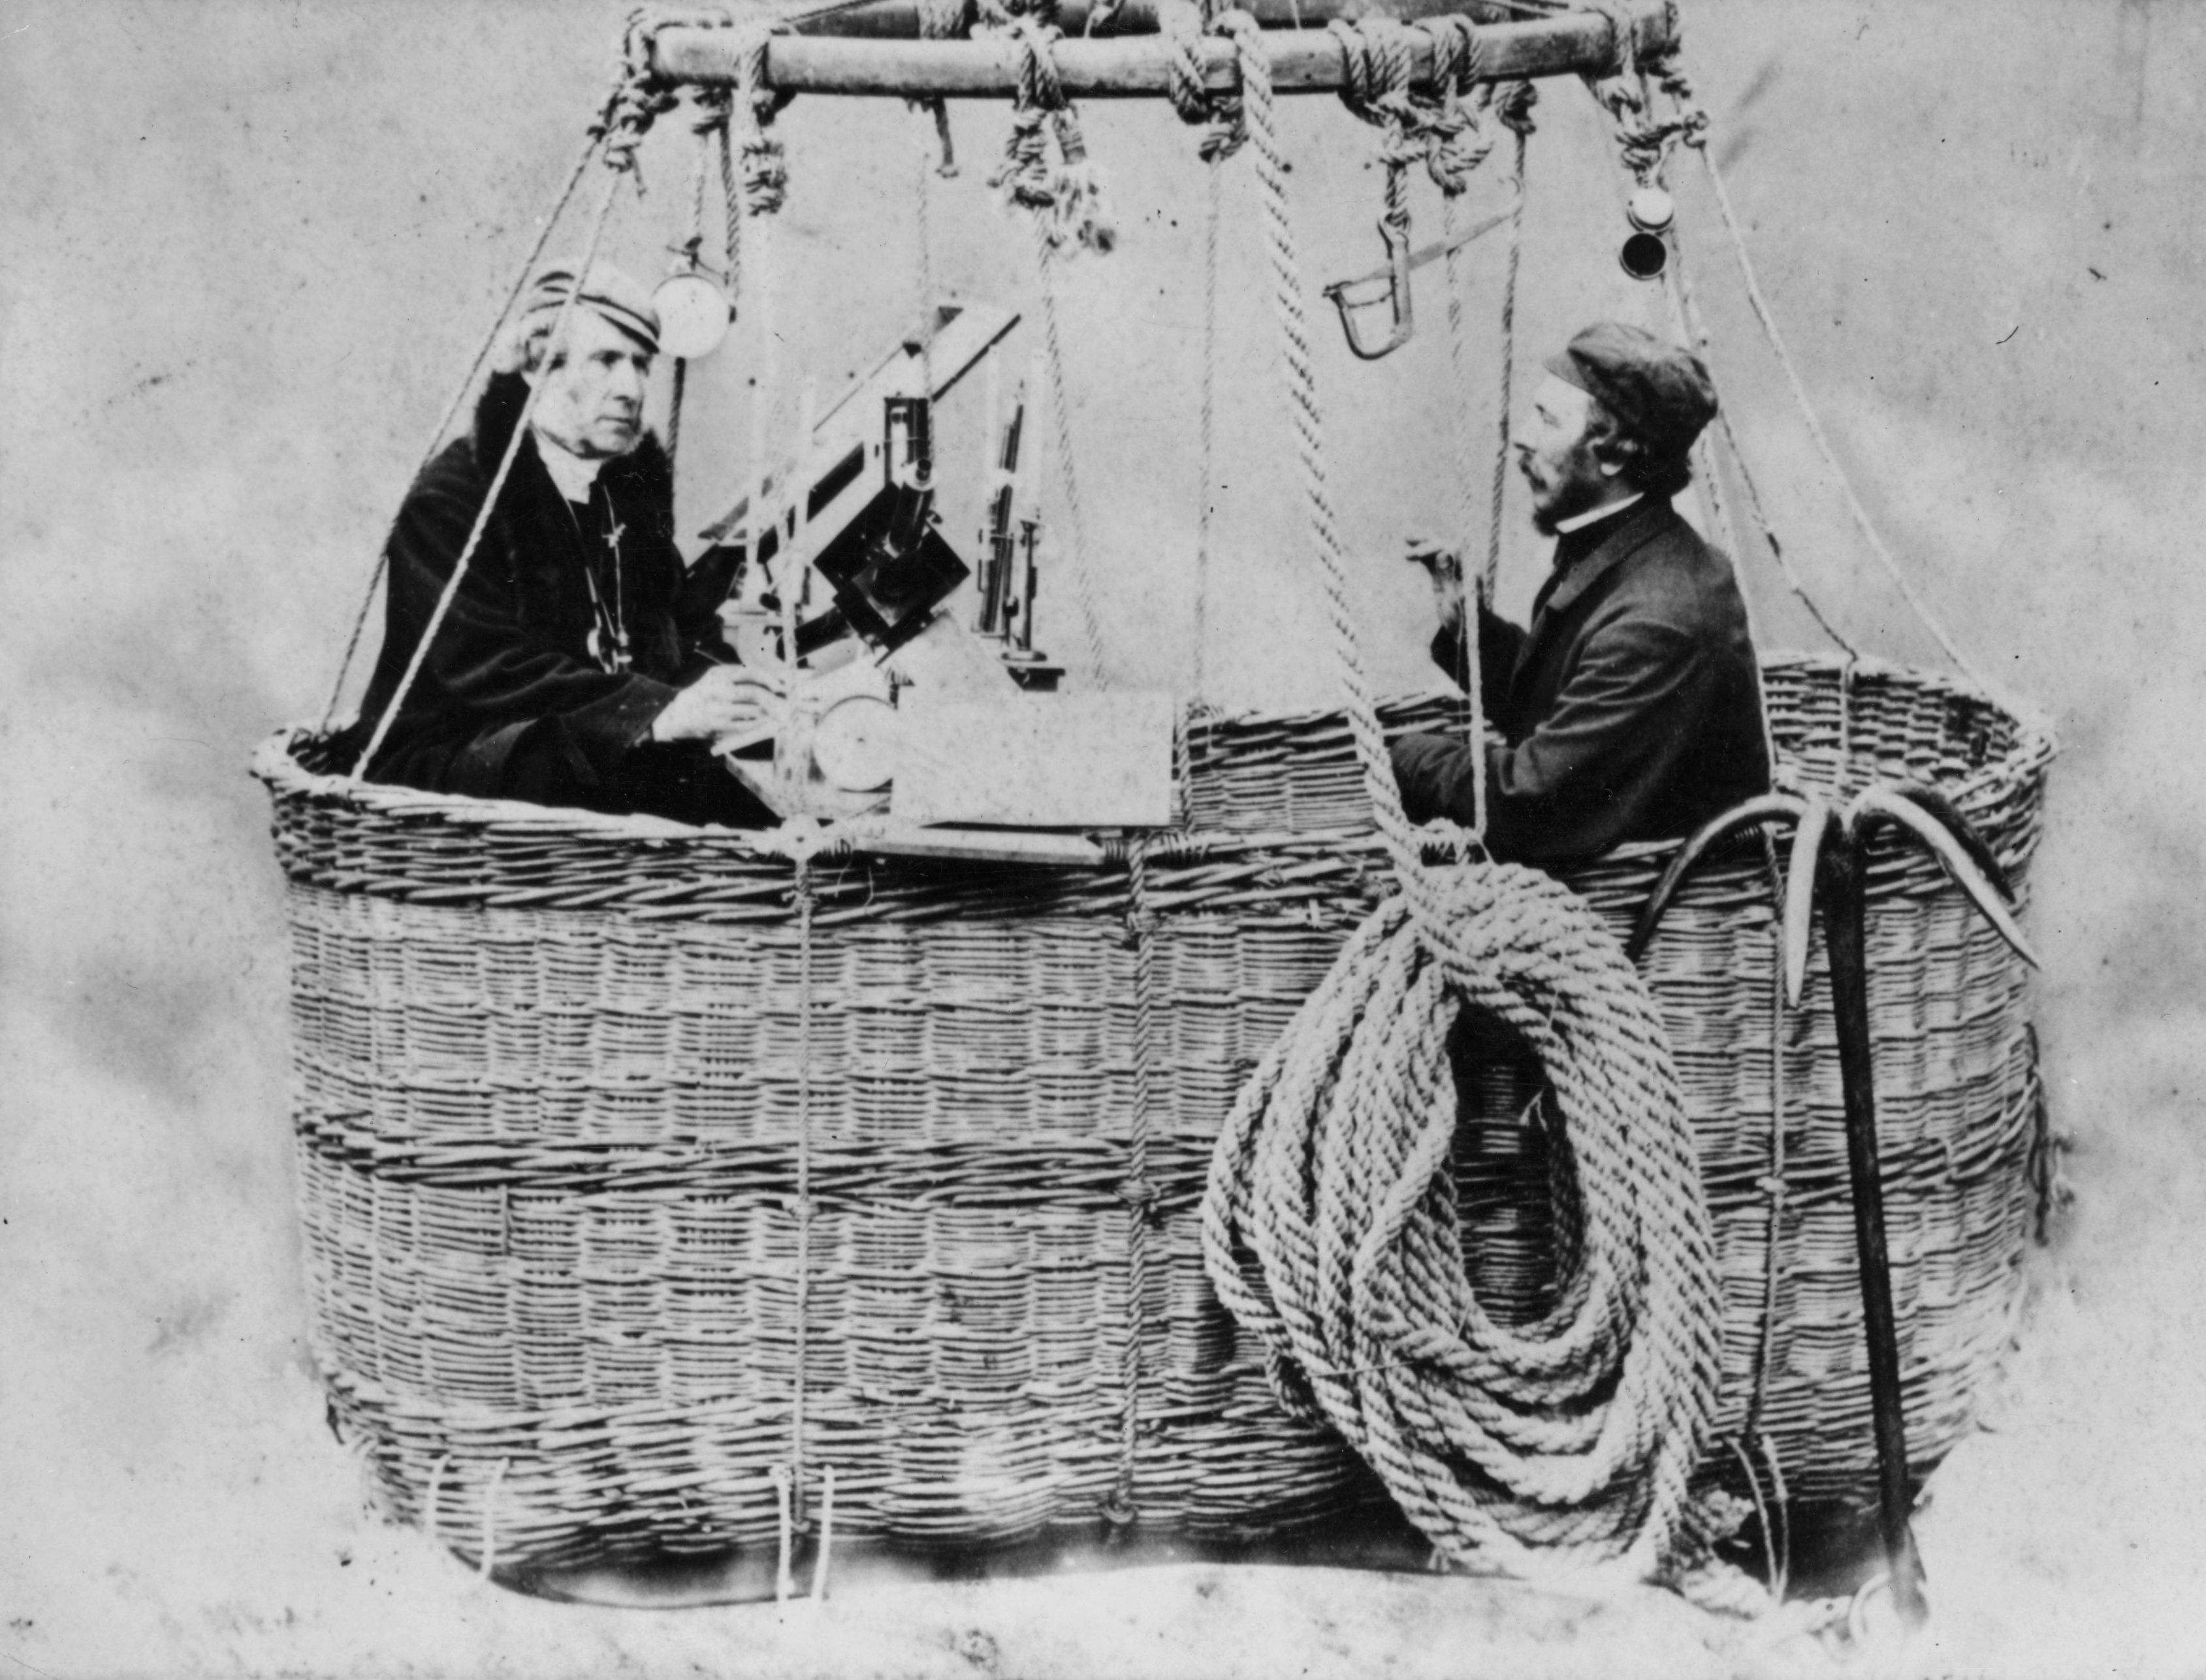 James Glaisher, left, and Henry Coxwell in the basket of a hot air balloon in about 1862